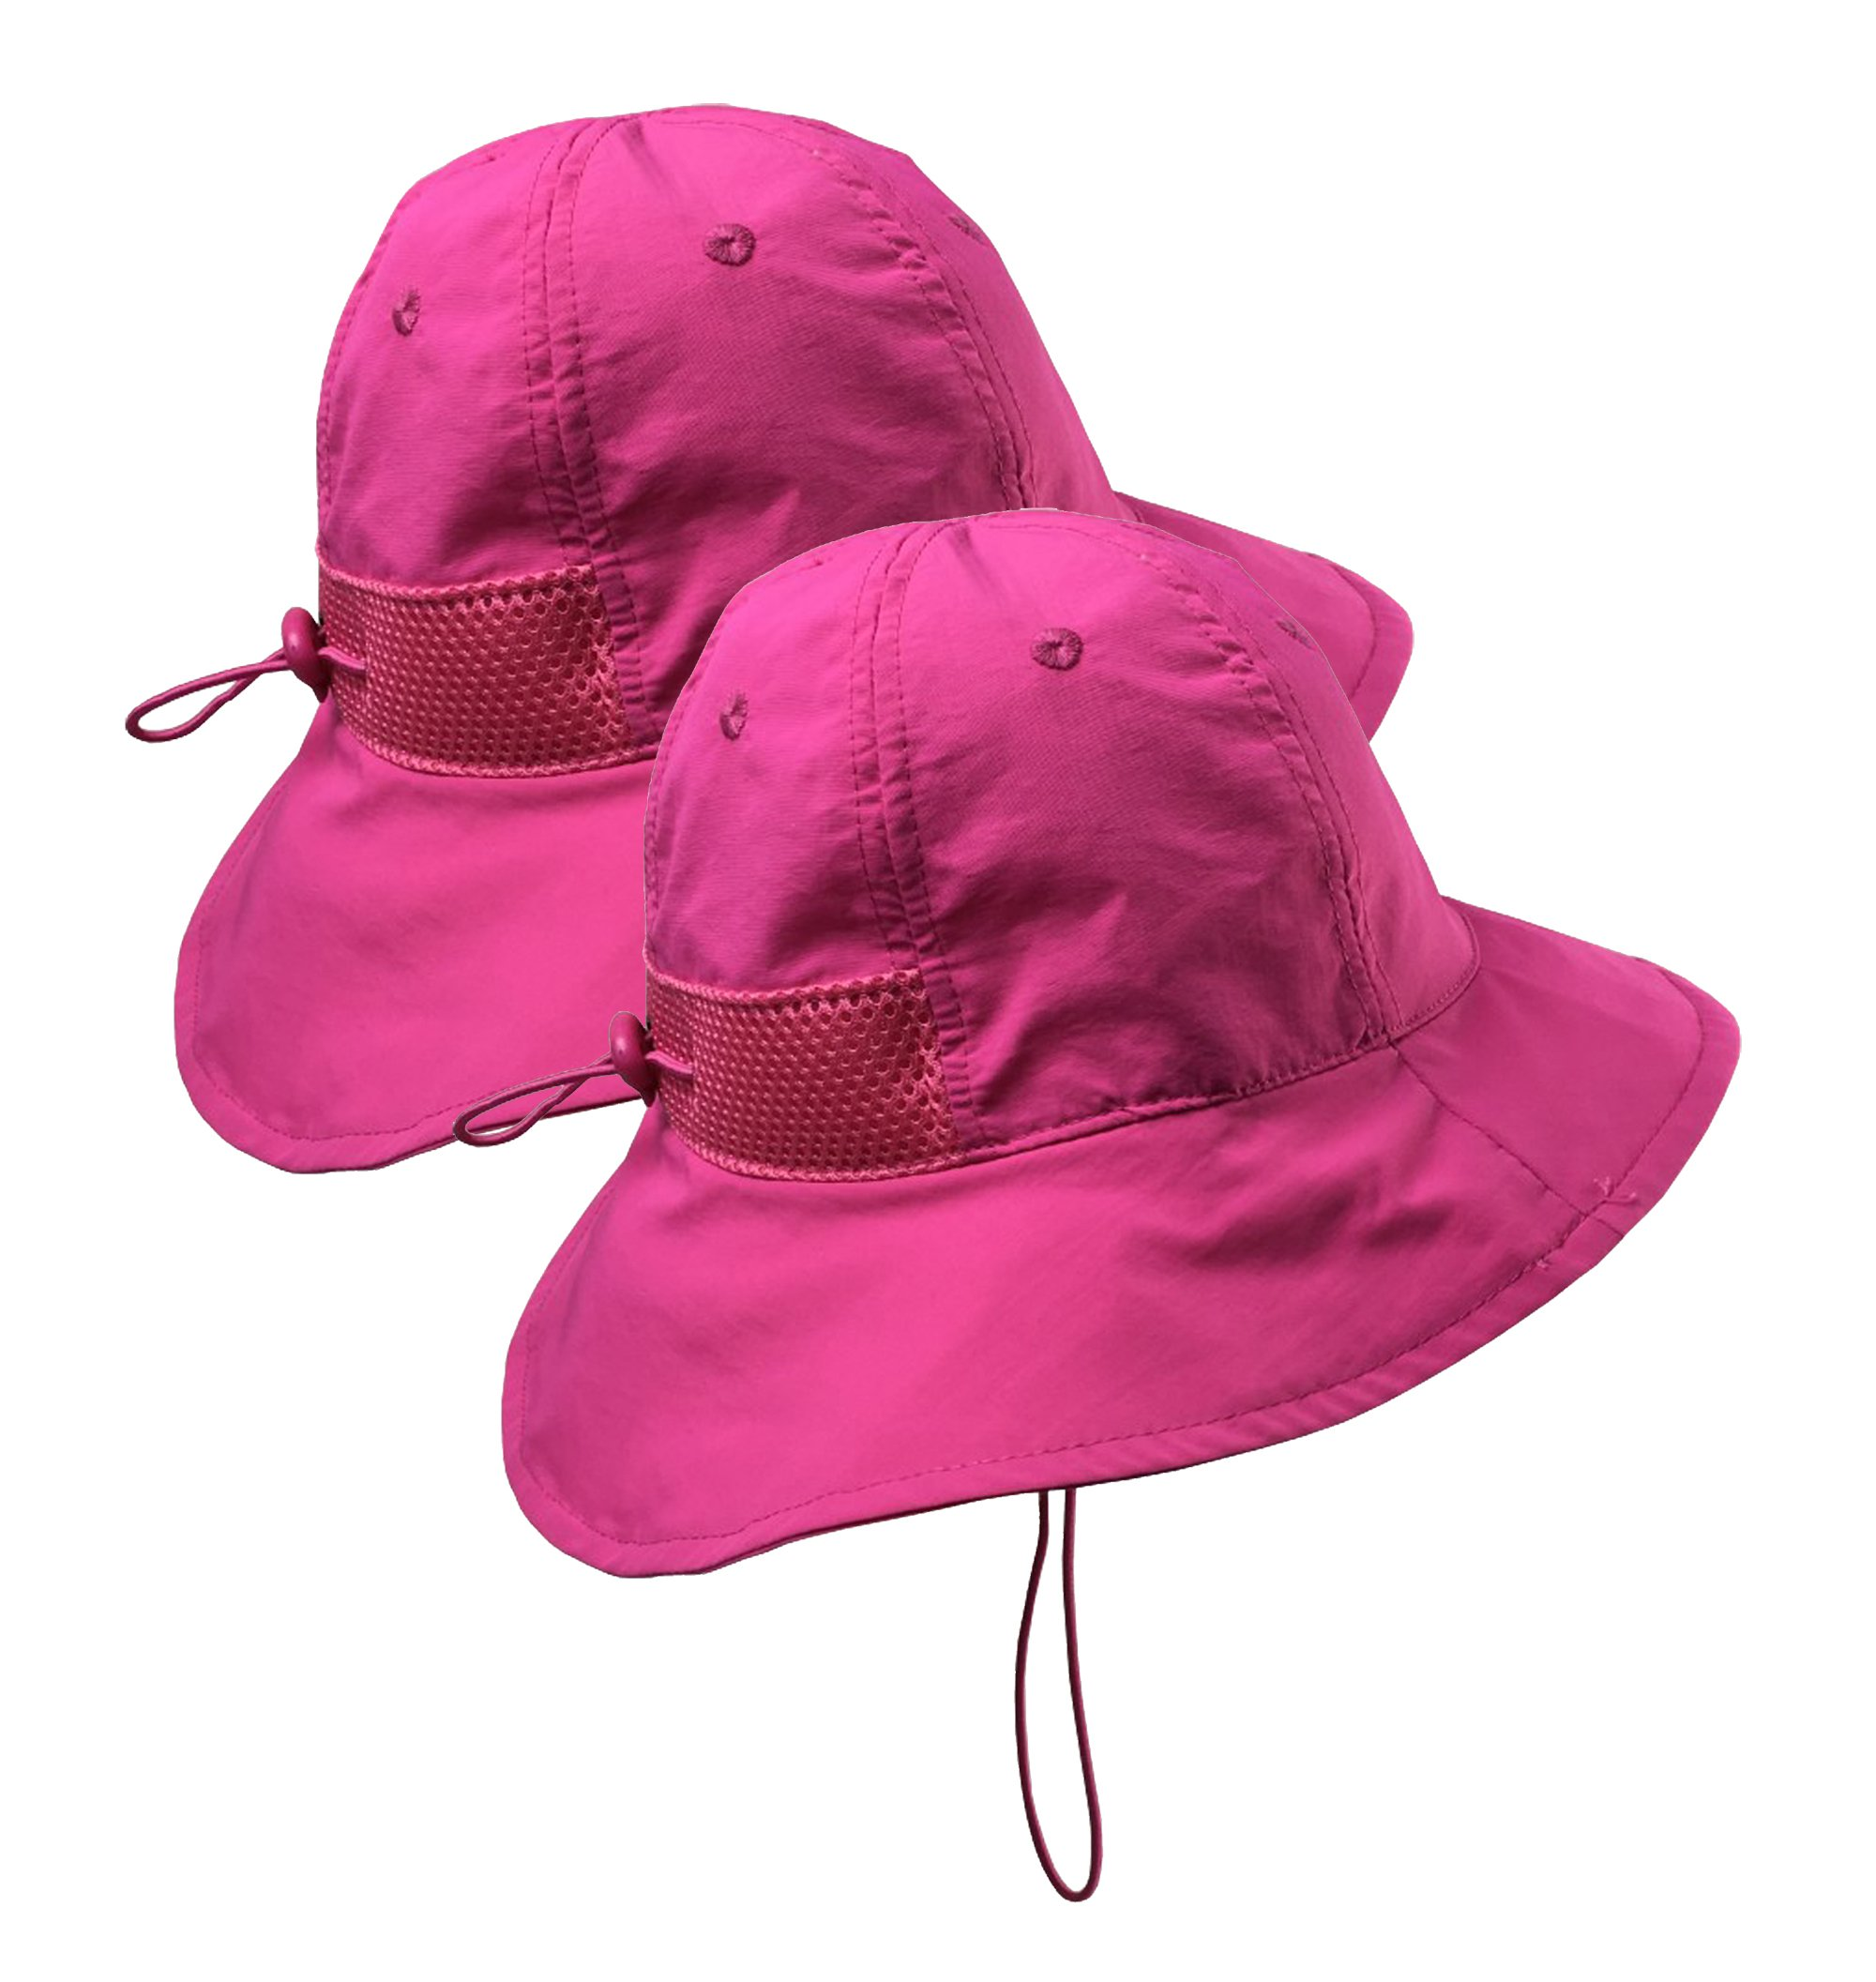 af5636ae Galleon - N'Ice Caps Kids SPF 50+ UV Protection Breathable Adjustable Sun  Hat - 2 Hat Pack (Neon Pink - 2 Pack, 56cm (22